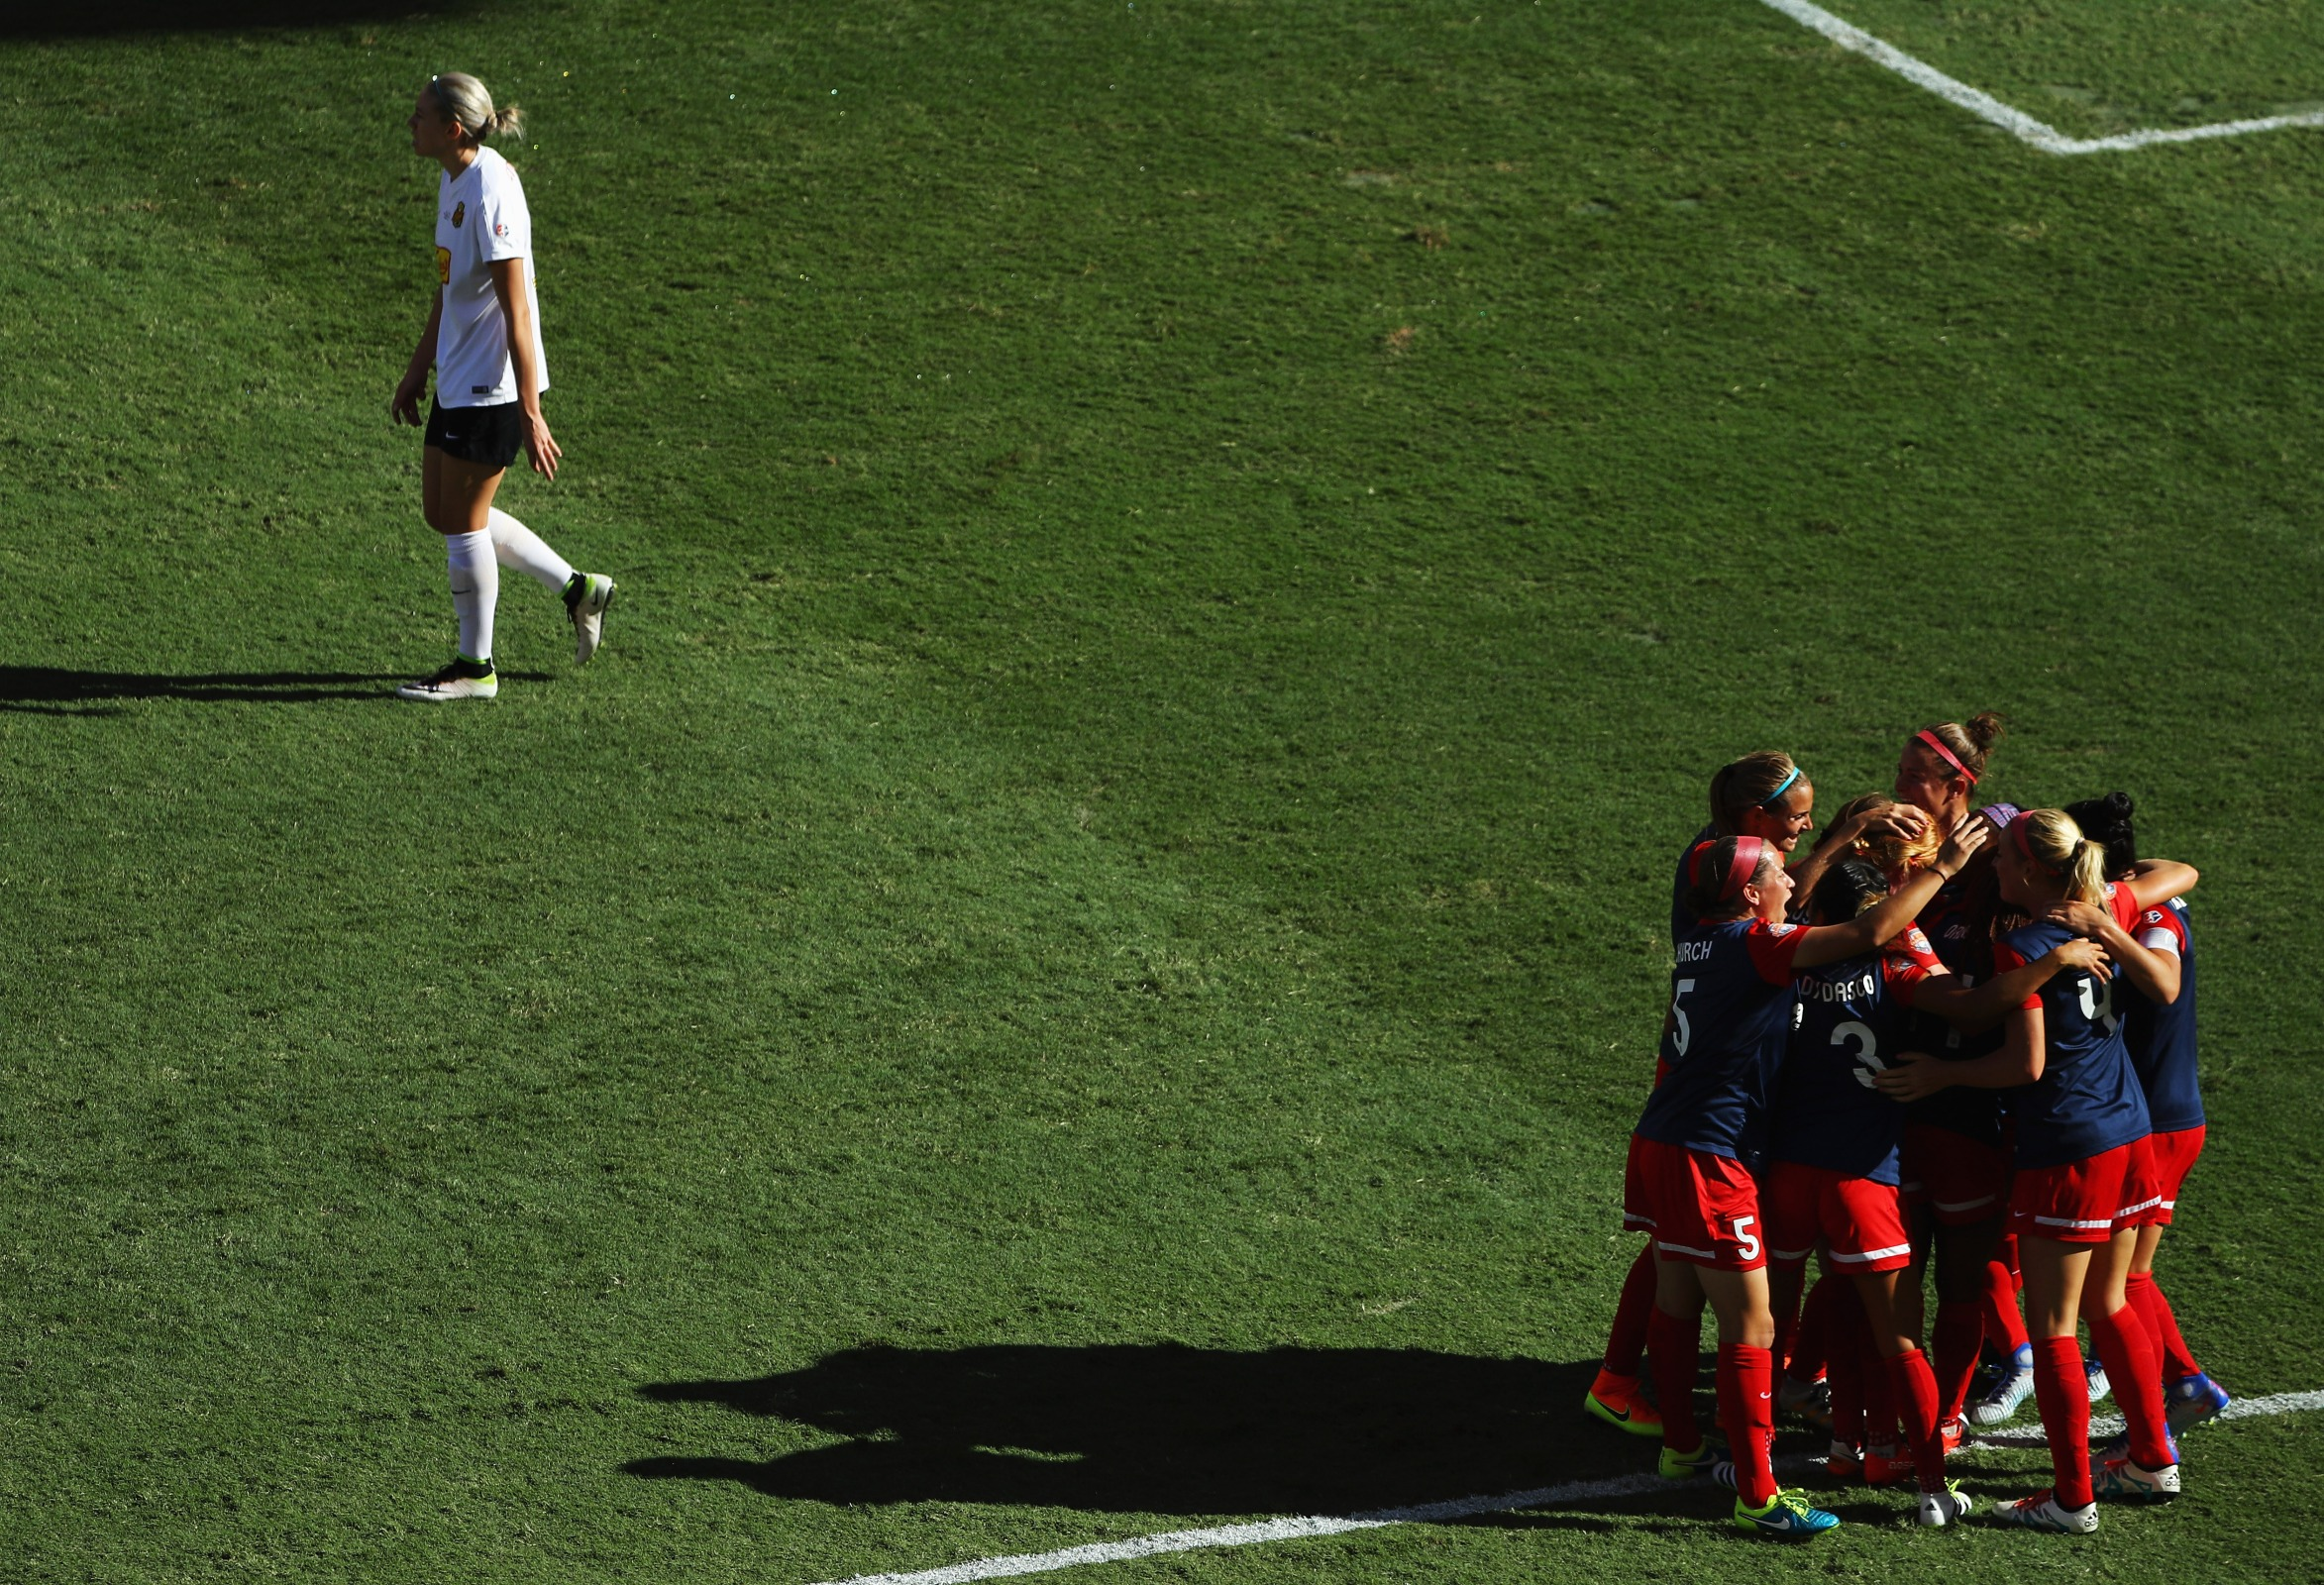 Crystal Dunn #19 of the Washington Spirit celebrates with her teammates after her goal against the Western New York Flash during the first half of the 2016 NWSL Championship at BBVA Compass Stadium on October 9, 2016 in Houston, Texas.